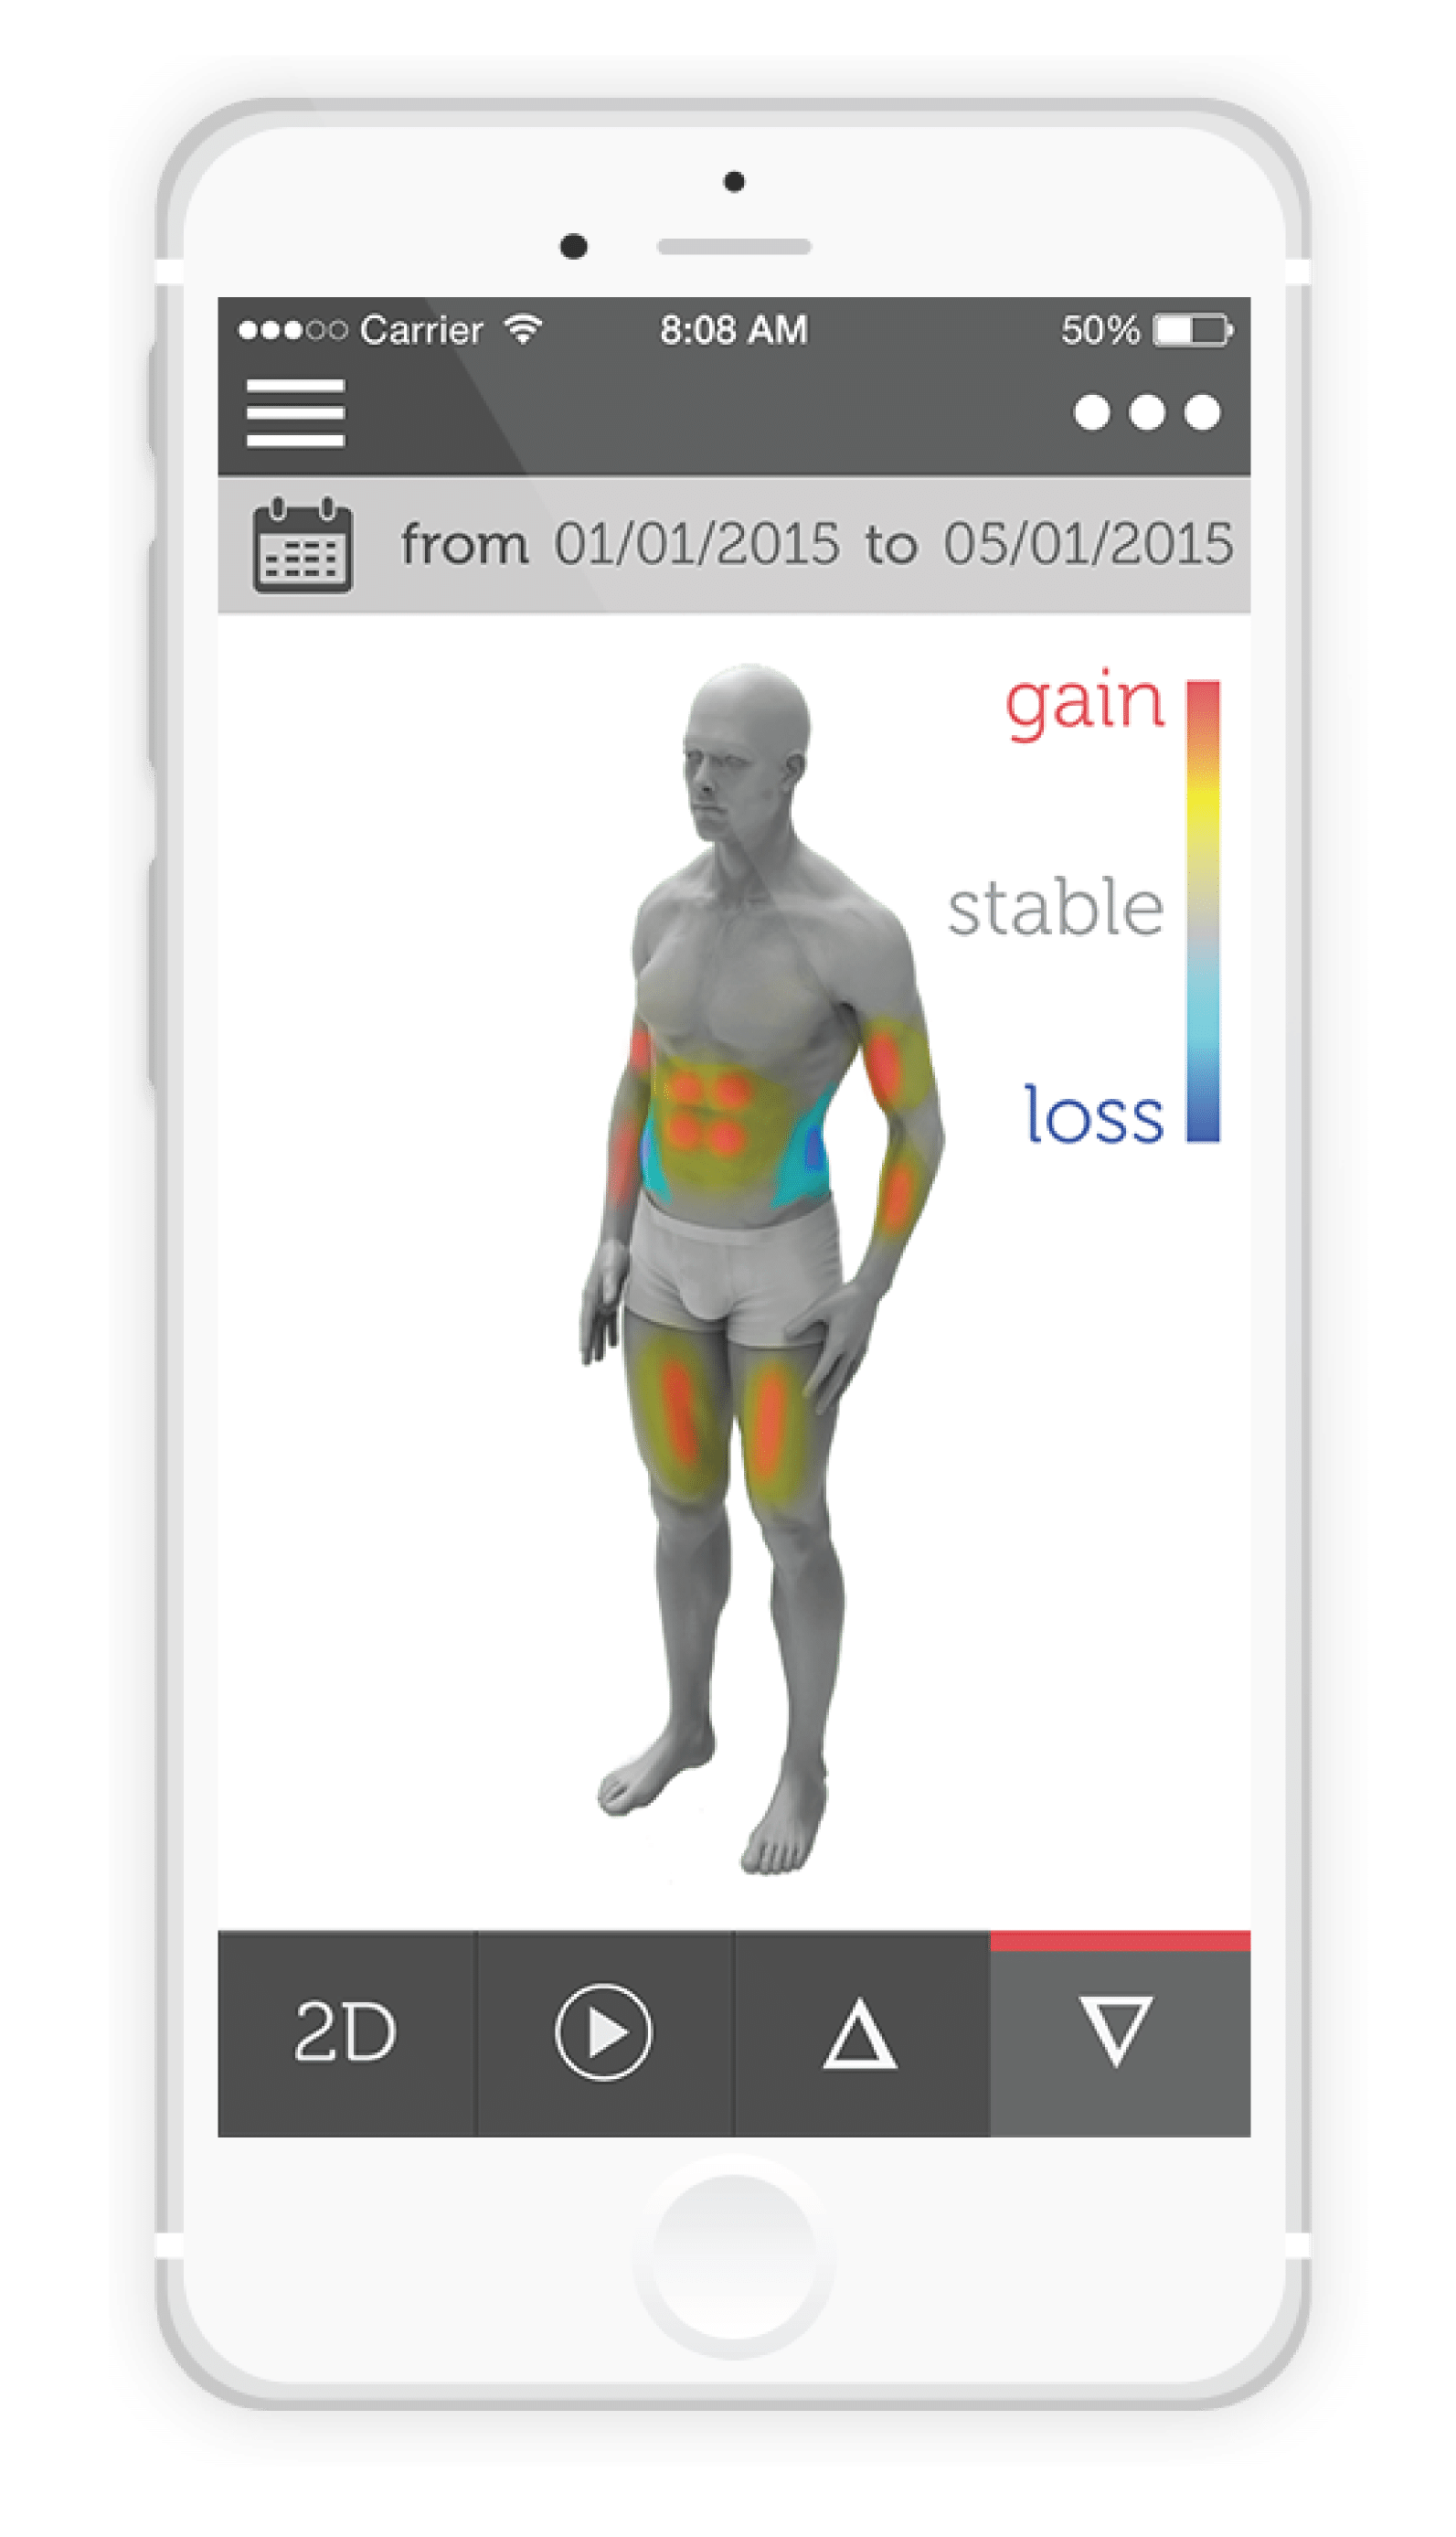 track your body fitness in 3d with shapescale - Track your body fitness in 3D with ShapeScale